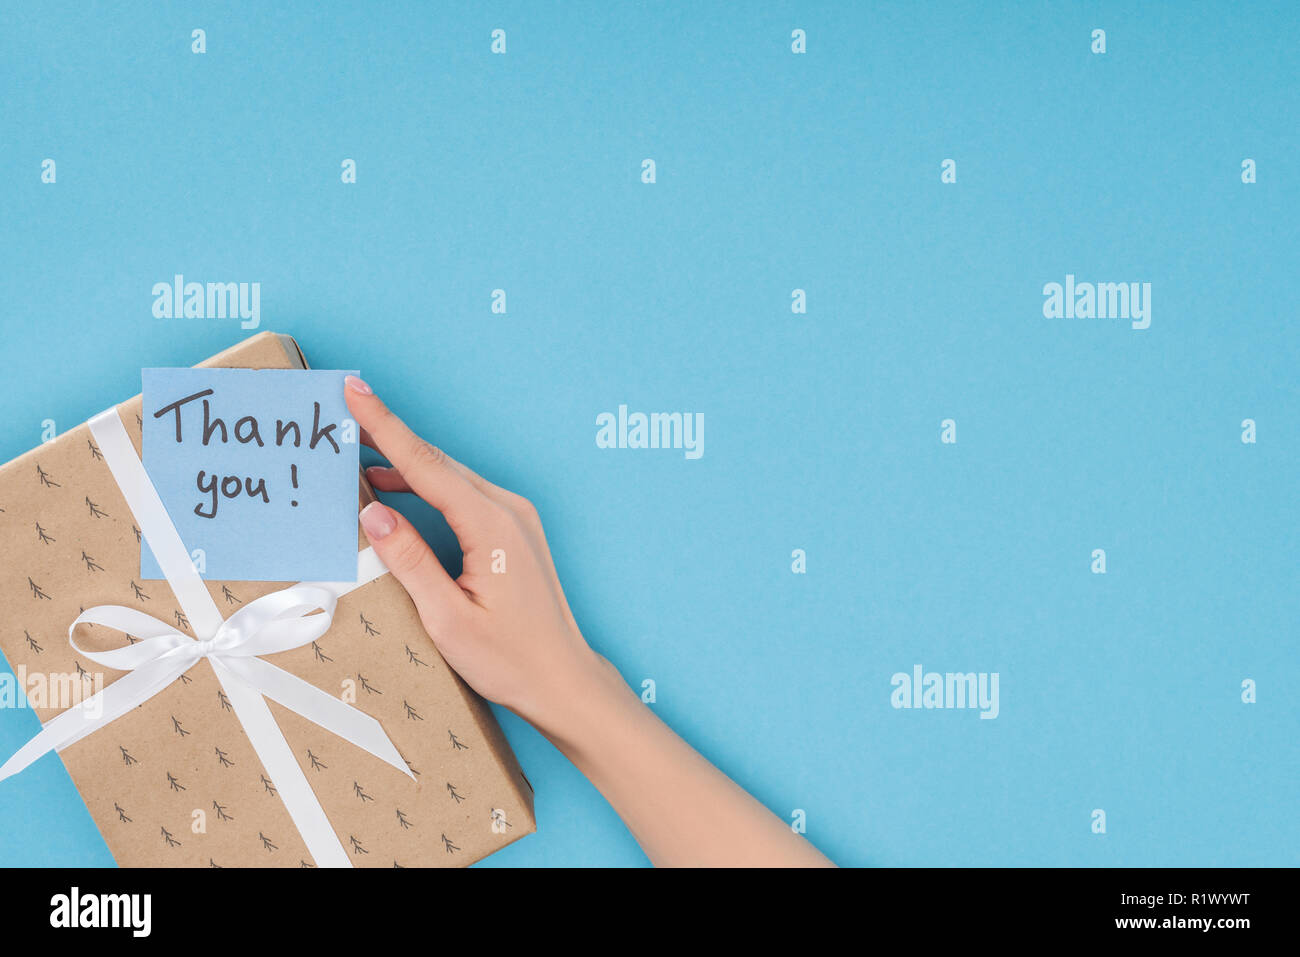 cropped view of hand and sticky note with thank you lettering on gift box isolated on blue background - Stock Image